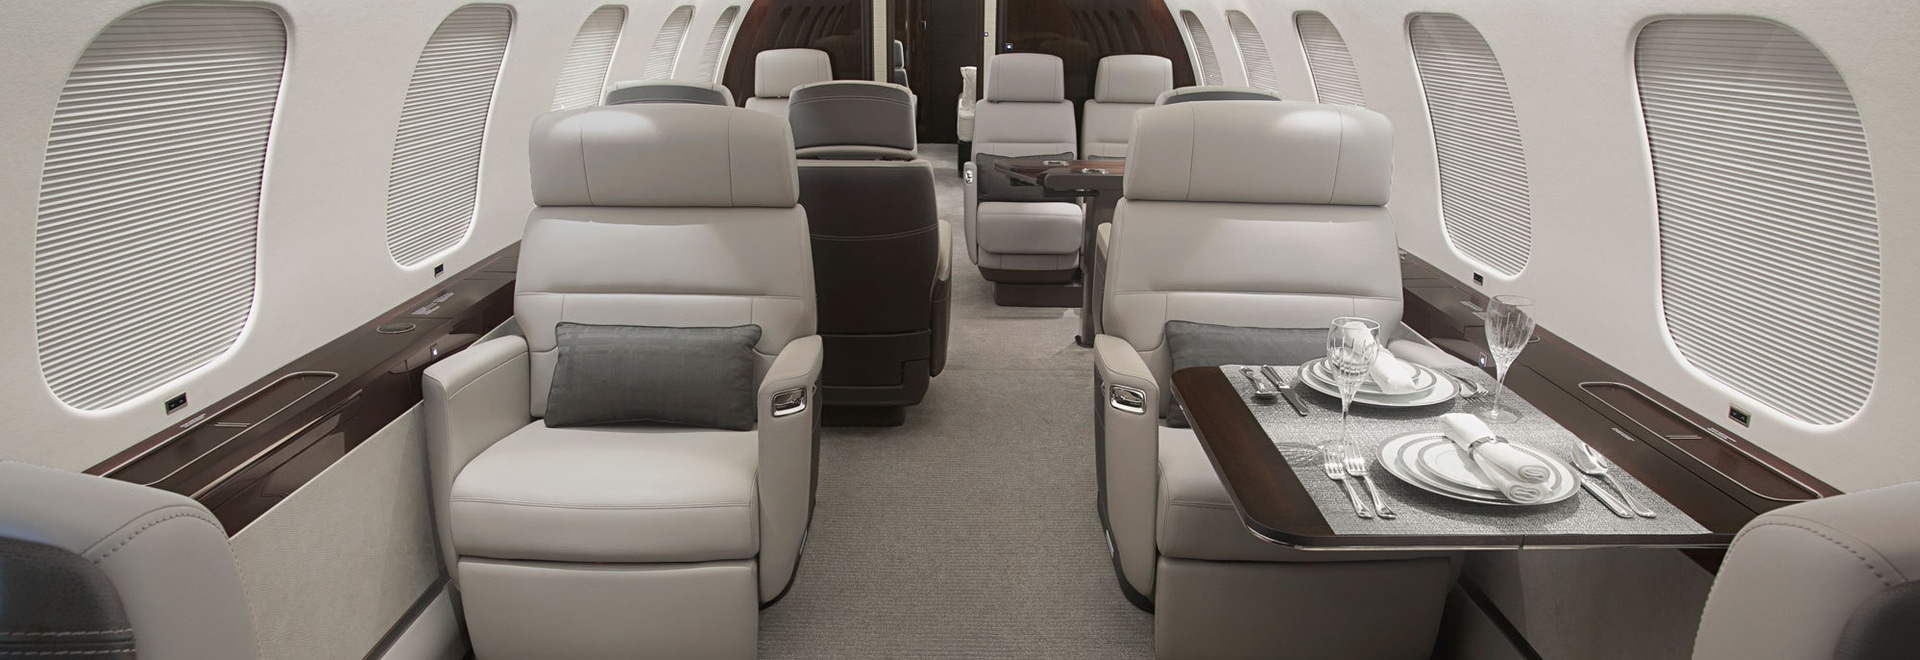 ZenithJet oversaw completion of the first in-service Bombardier Global 7500. (Photo: ZenithJet)